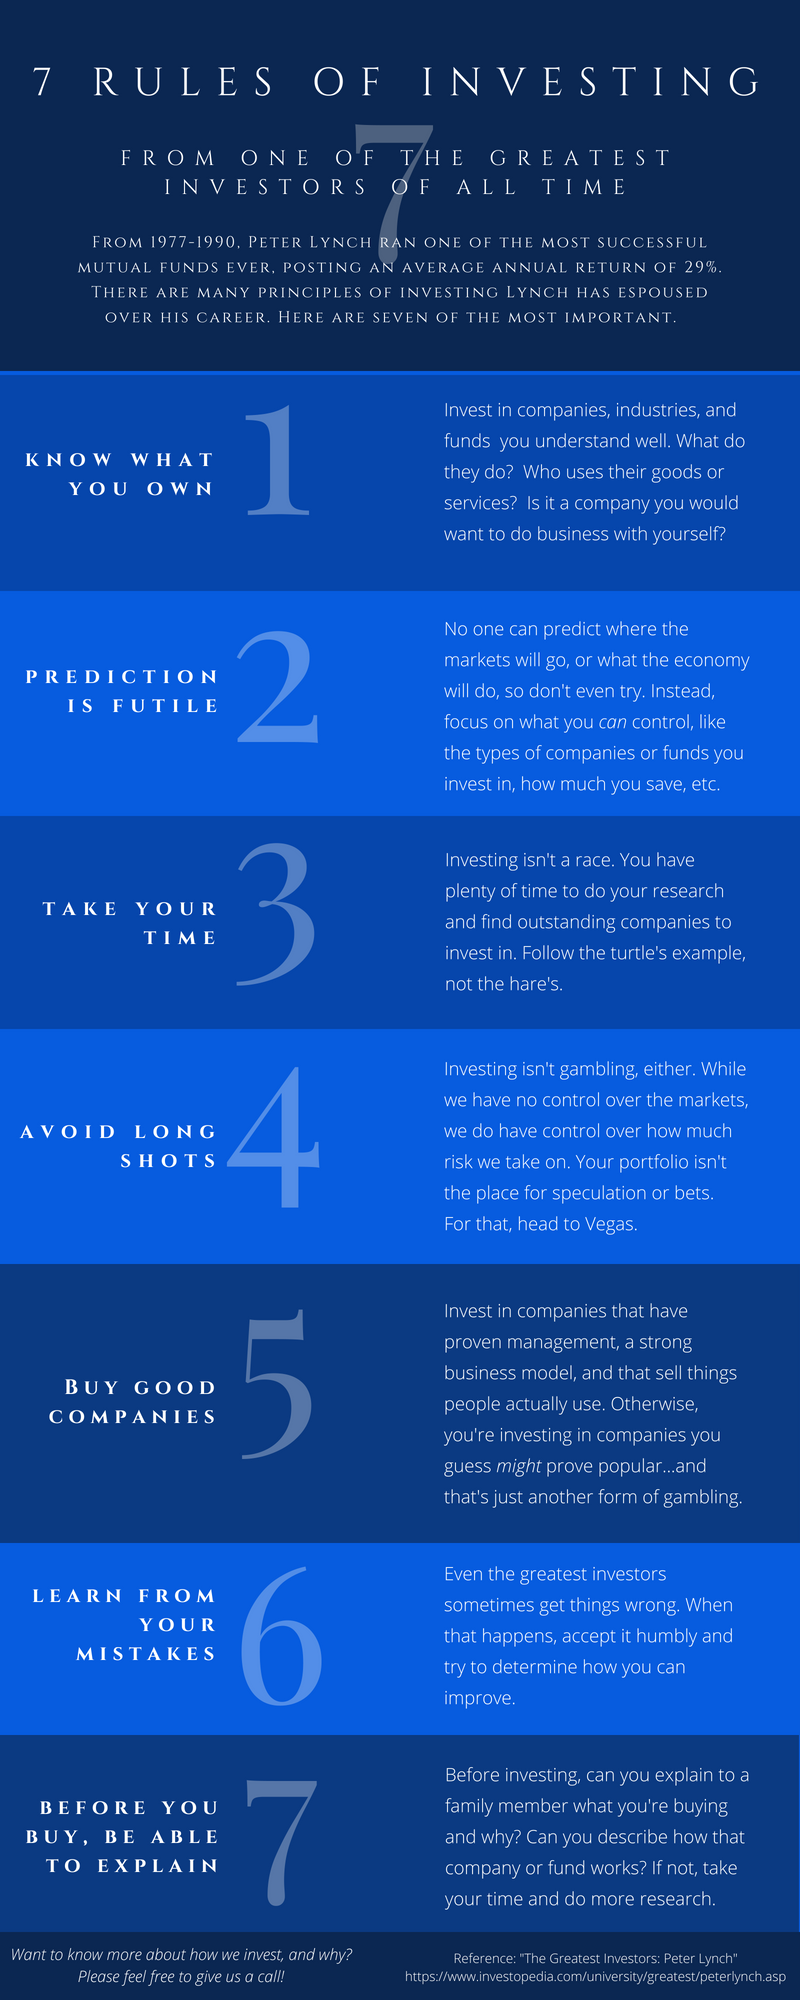 7 Rules of Investing